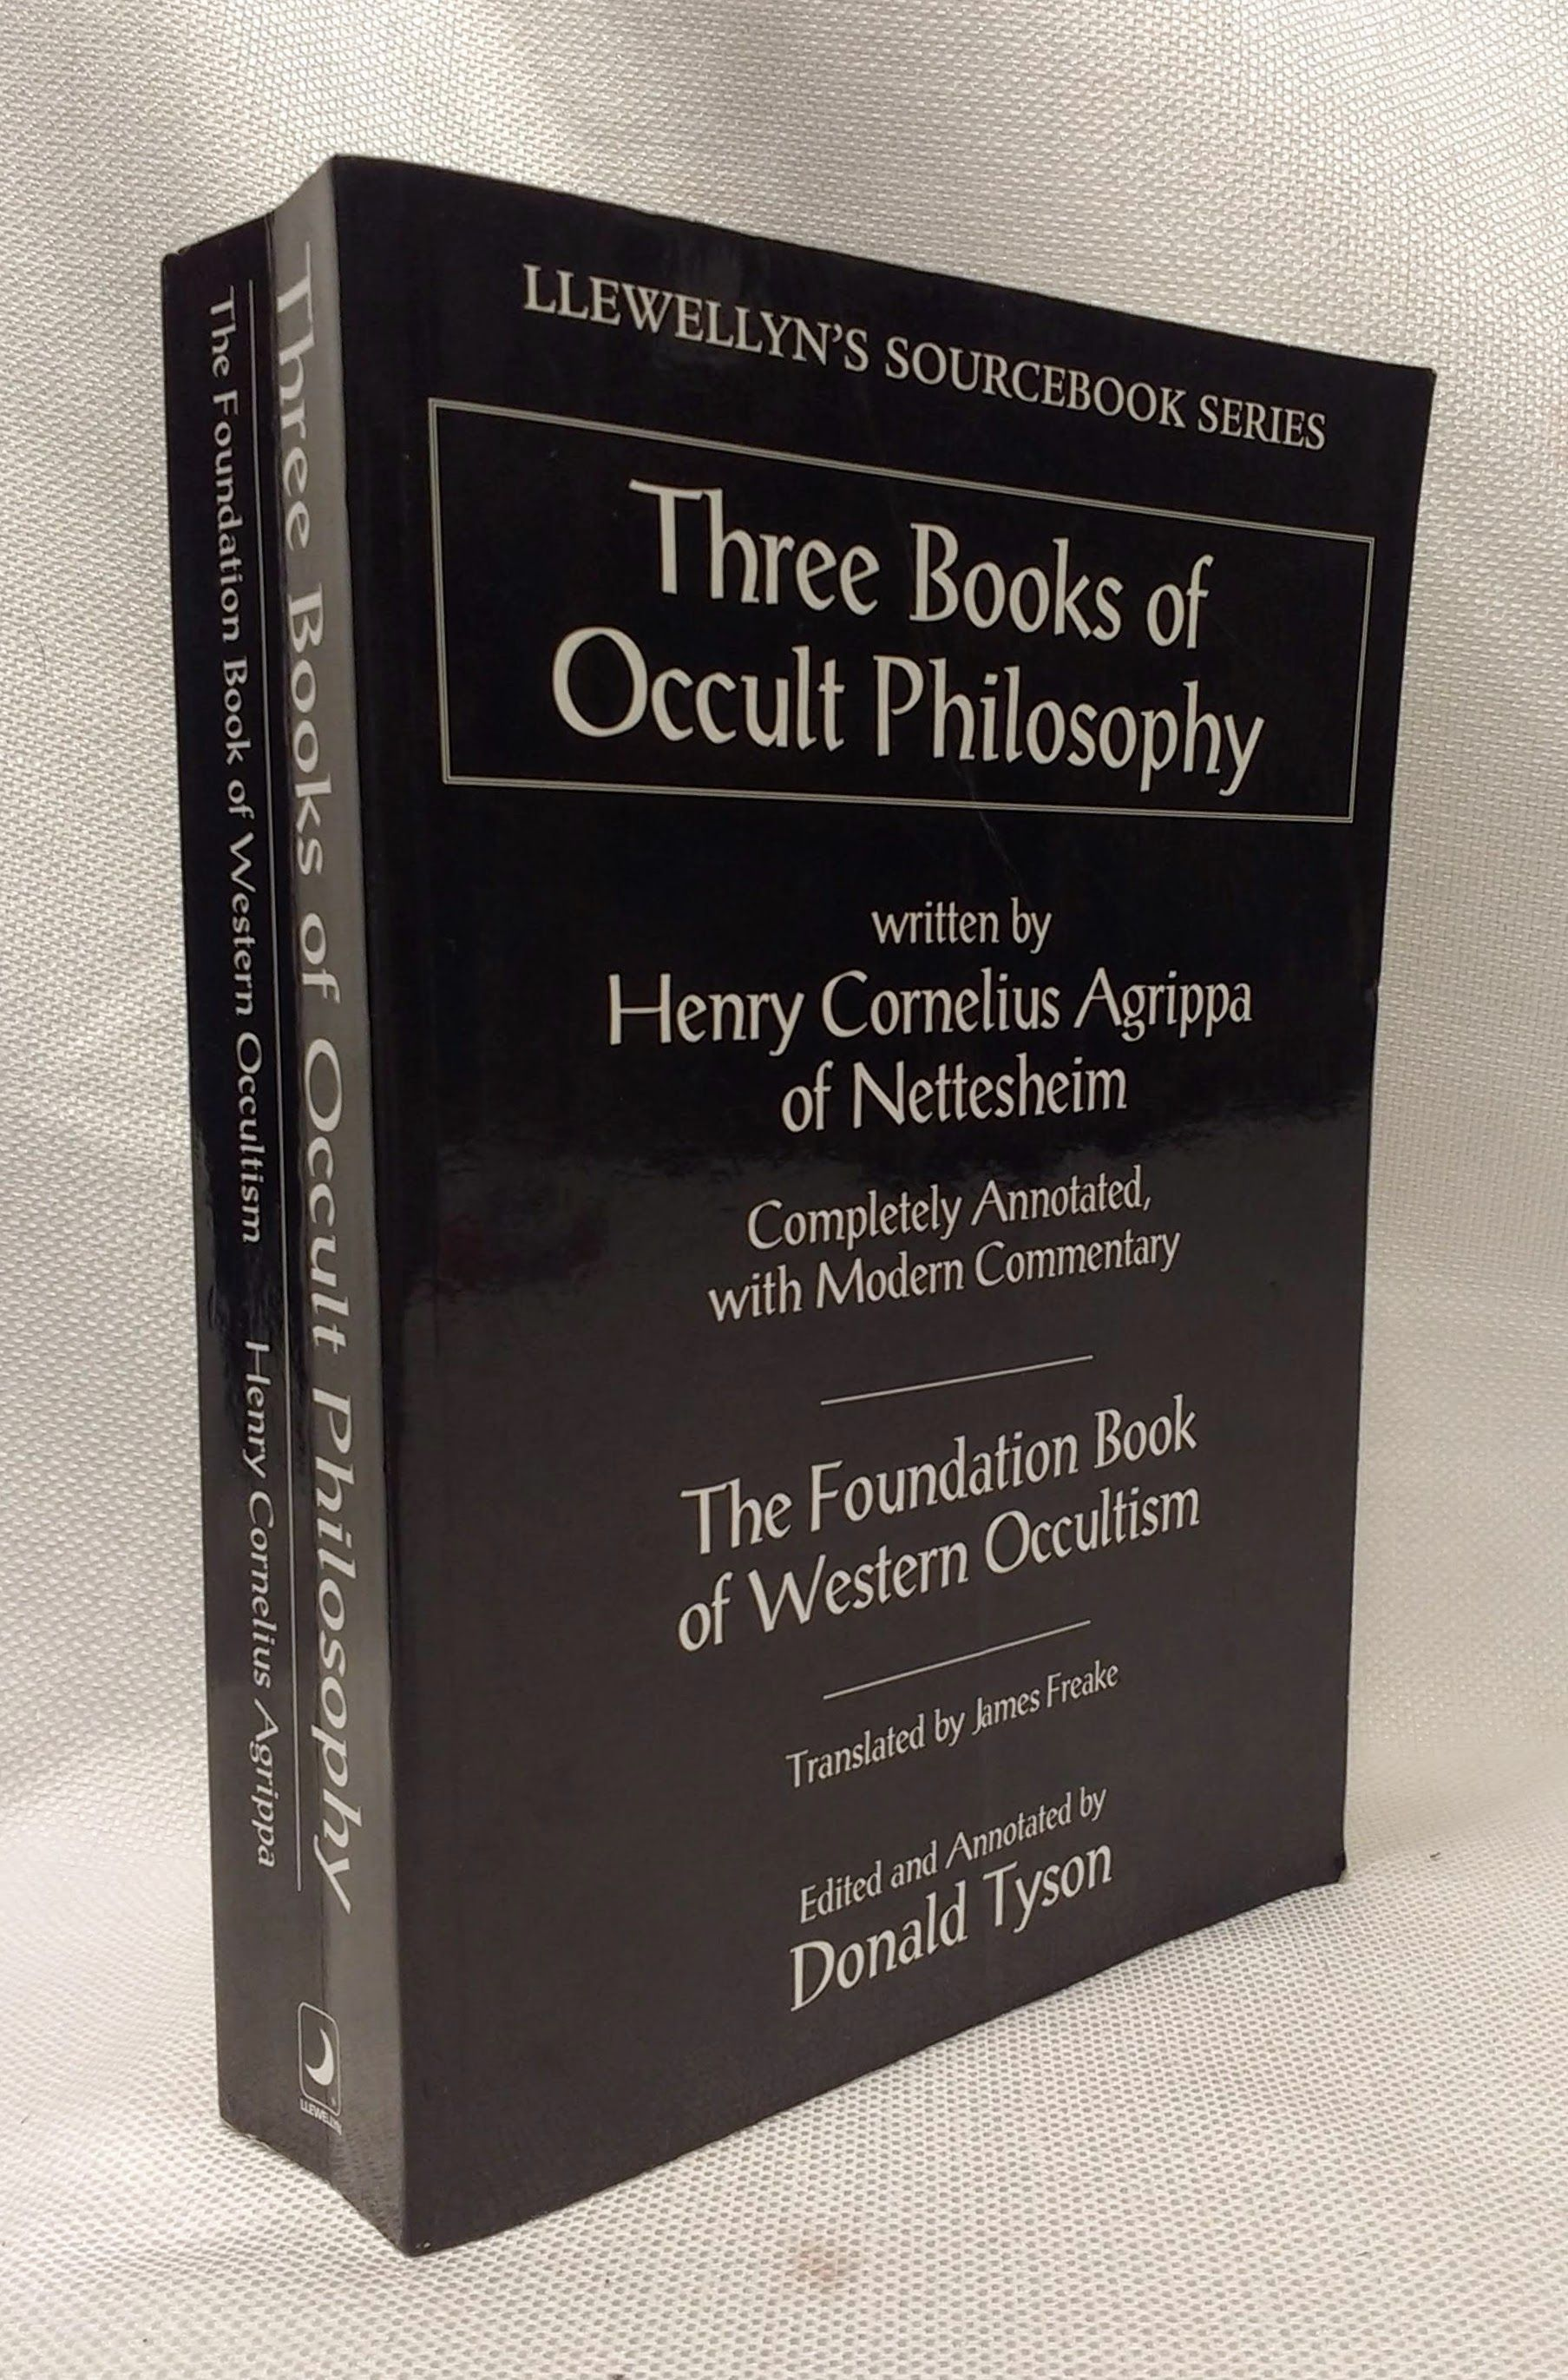 Three Books of Occult Philosophy (Llewellyn's Sourcebook), Agrippa, Henry Cornelius; Tyson, Donald; Freake, James